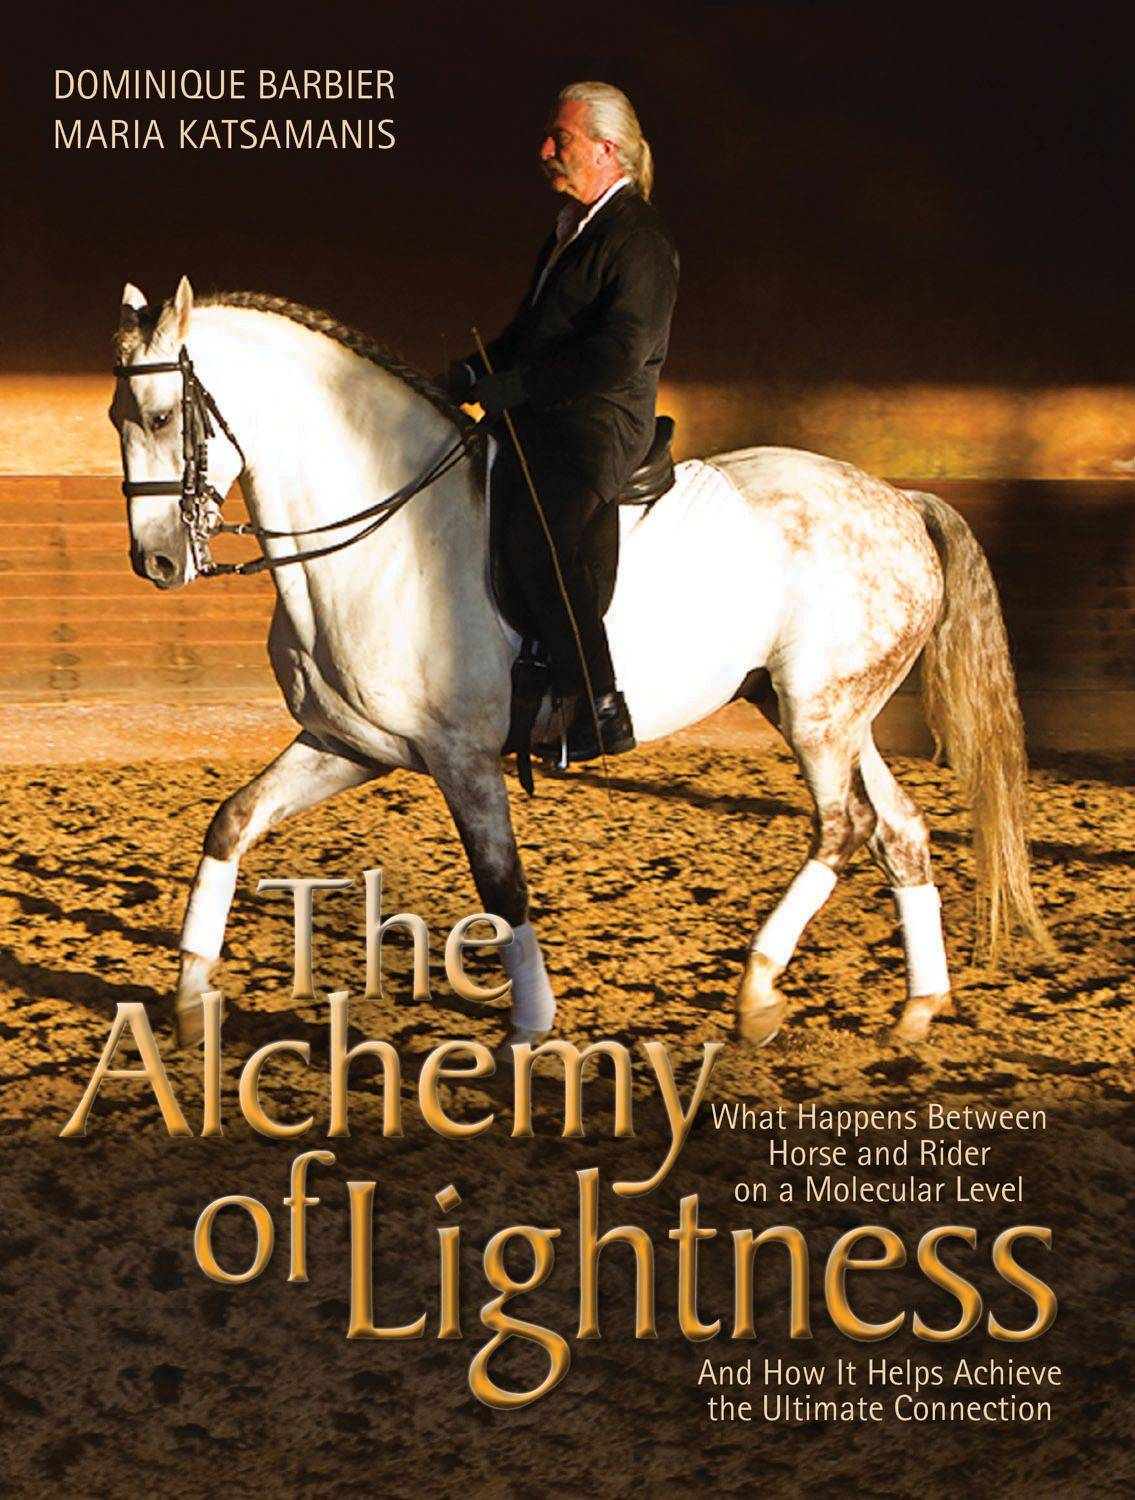 The Alchemy of Lightness by Dominique Barbier & Maria Katsamanis